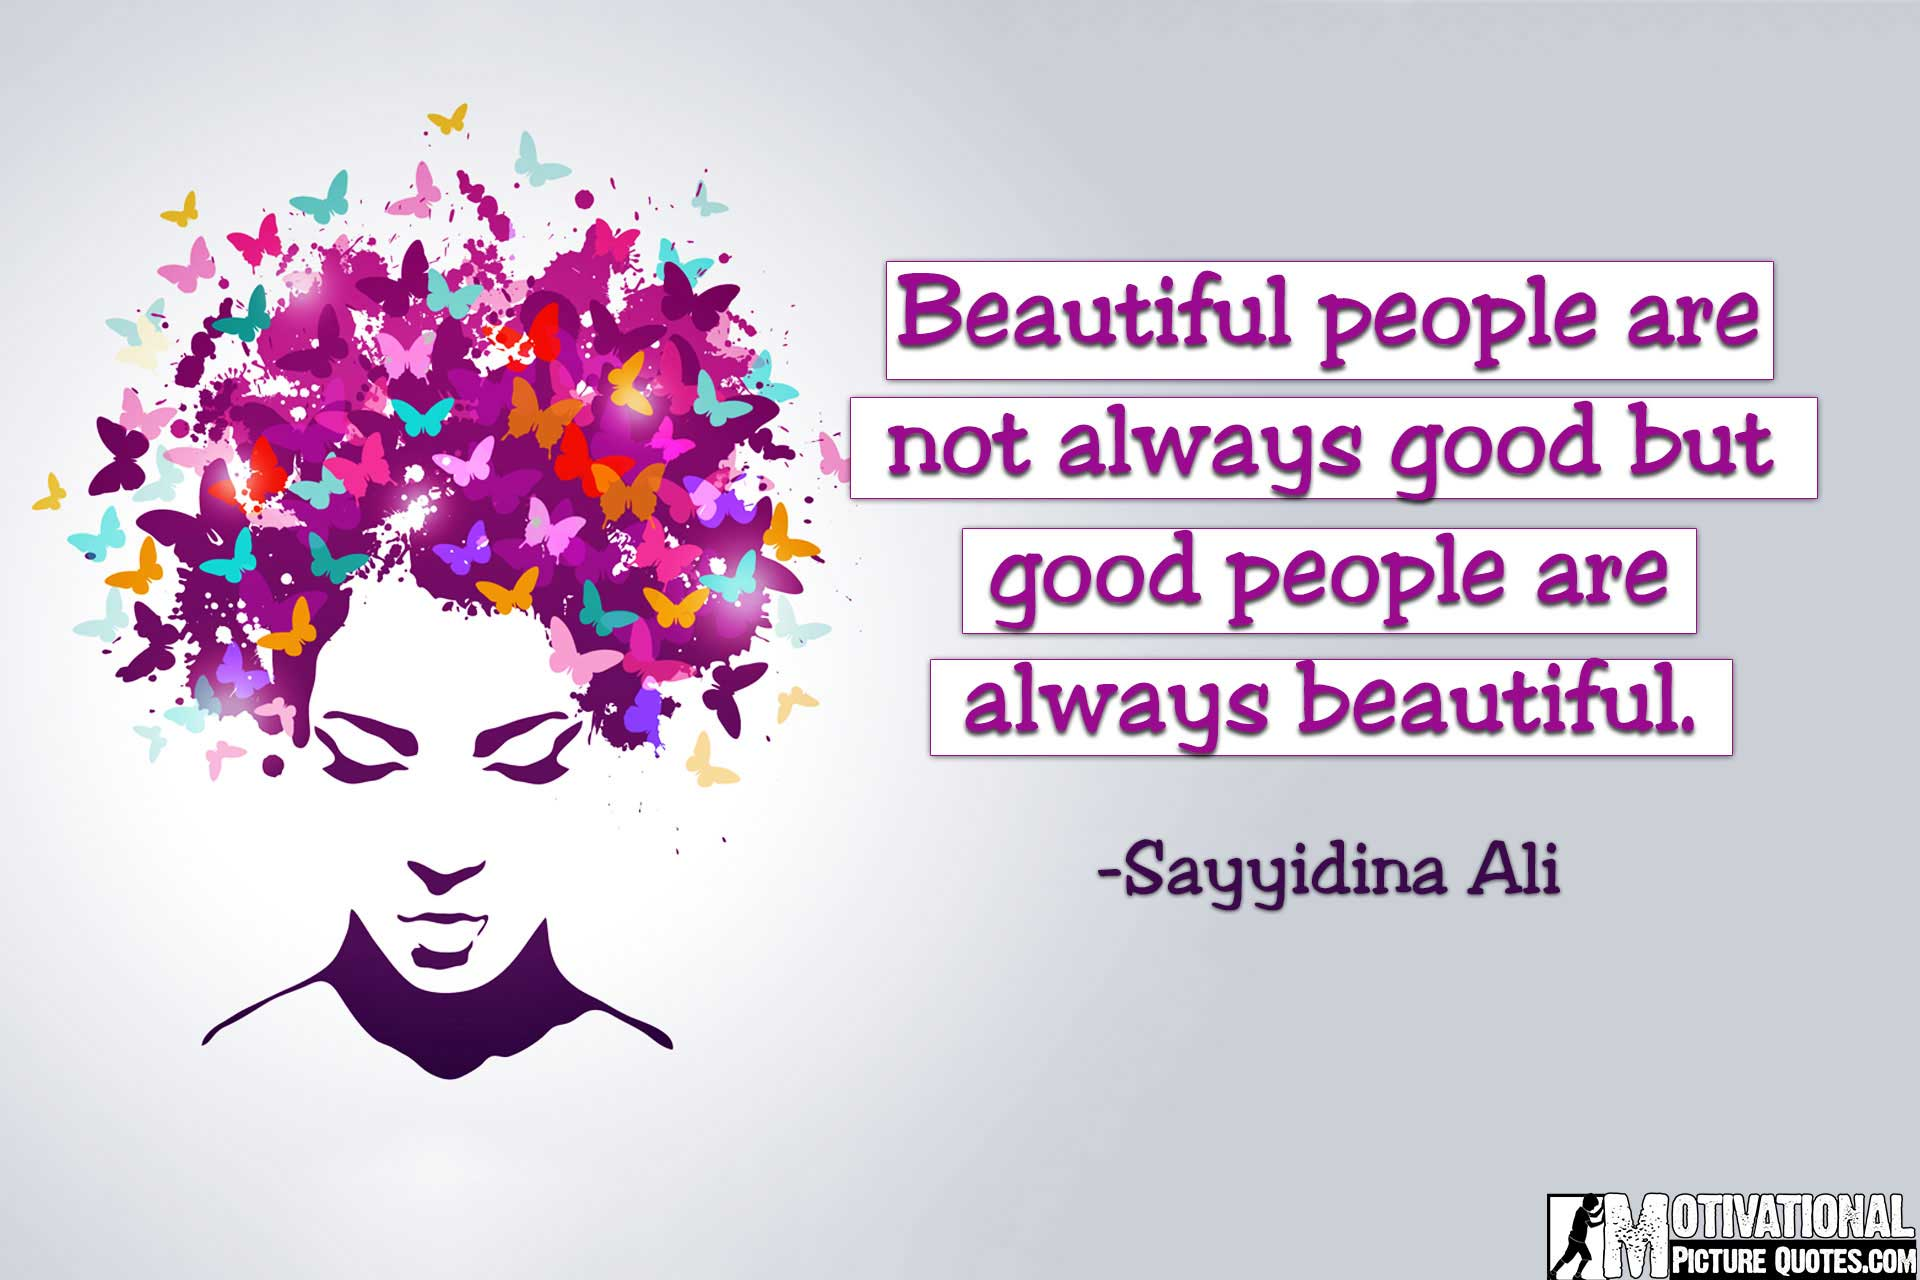 10 Famous Inner Beauty Quotes With Images Insbright